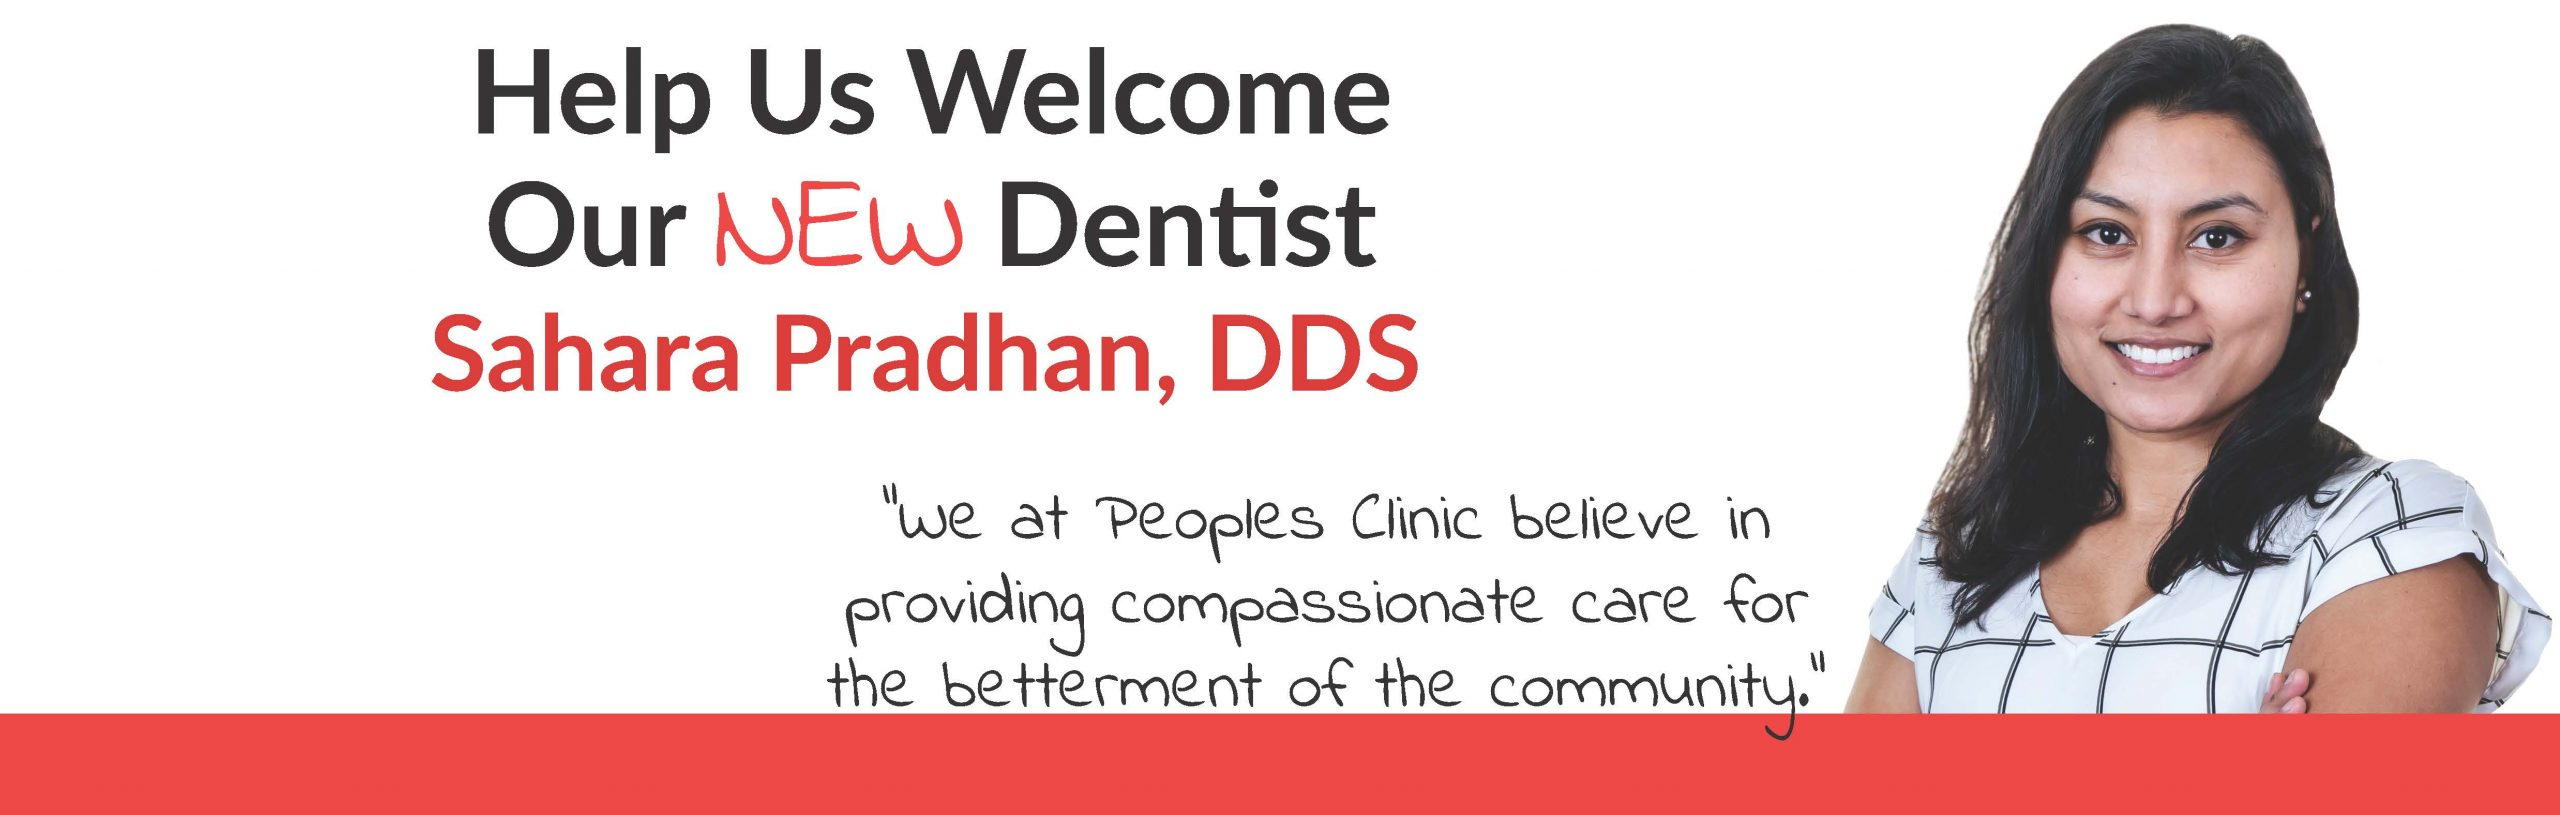 Welcoming New Dentist